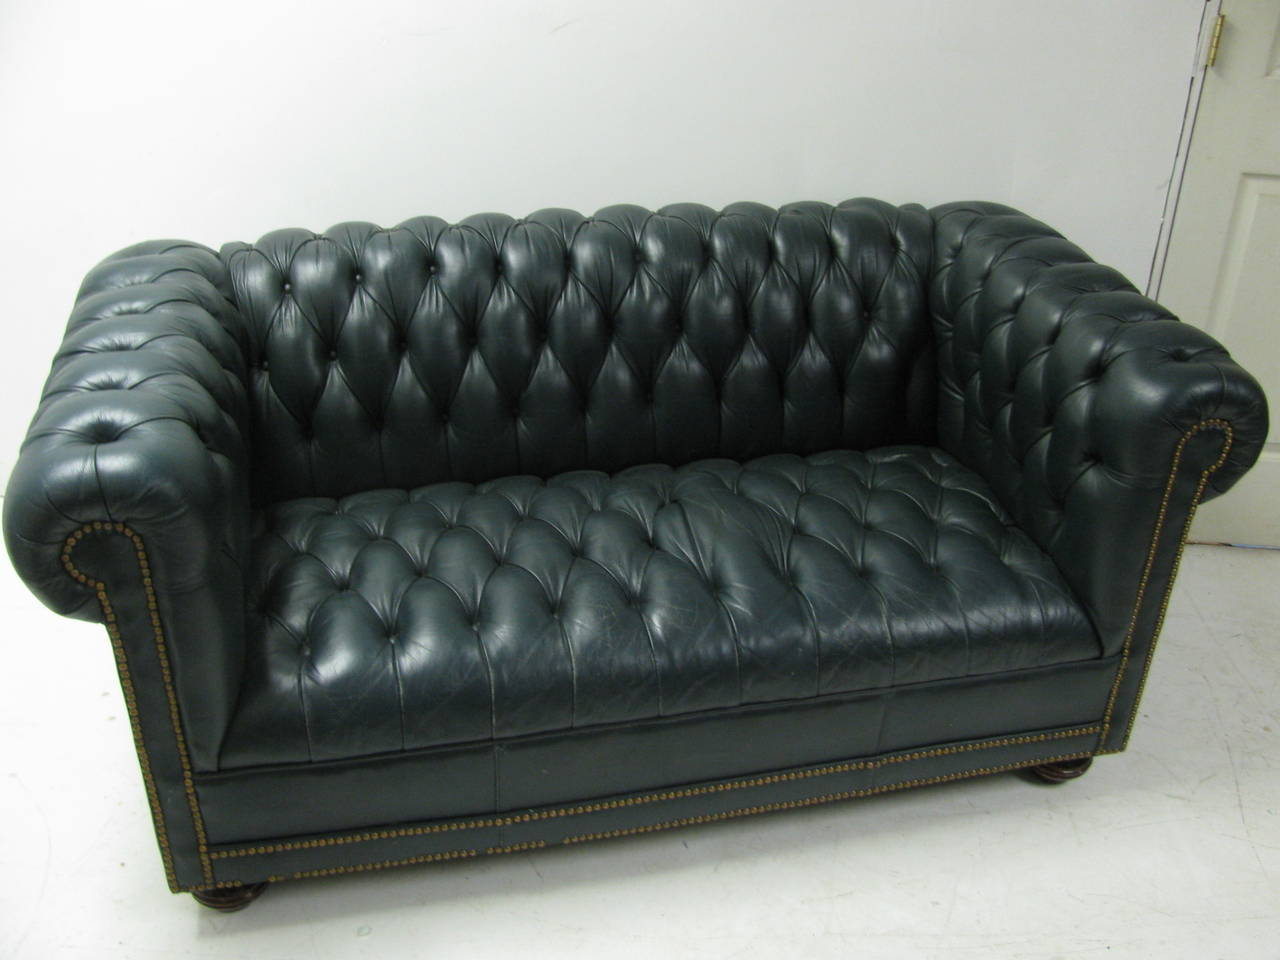 Fine Classic Green Leather Two Seat Chesterfield Sofa At 1Stdibs Onthecornerstone Fun Painted Chair Ideas Images Onthecornerstoneorg